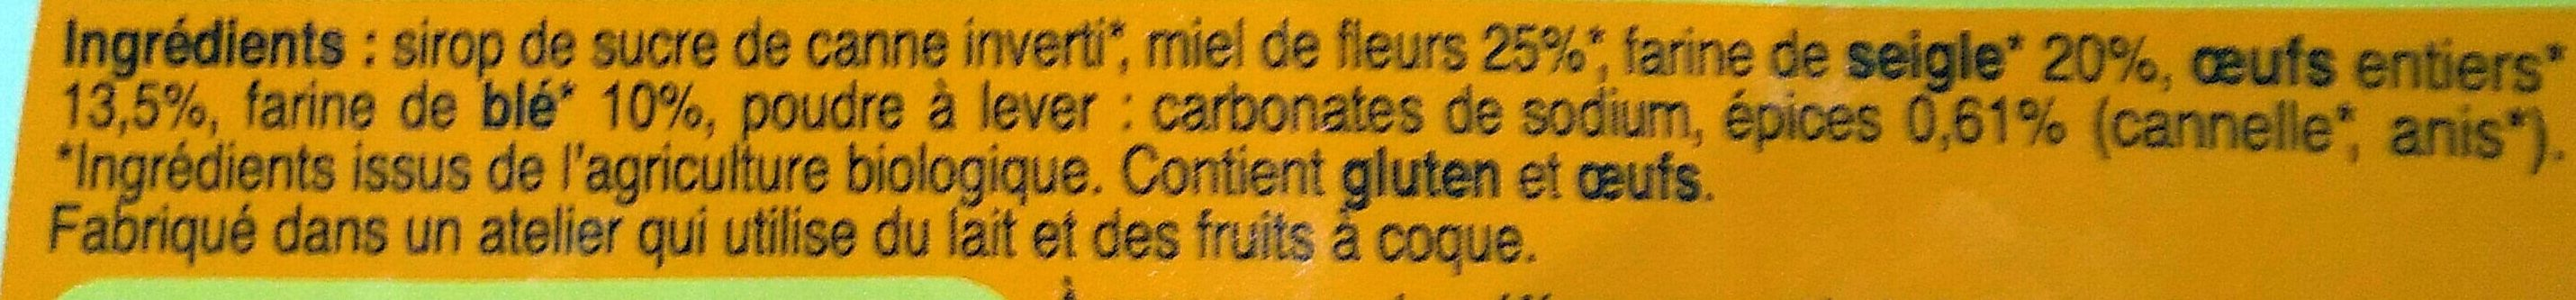 Pain d'épices tranché - Ingredients